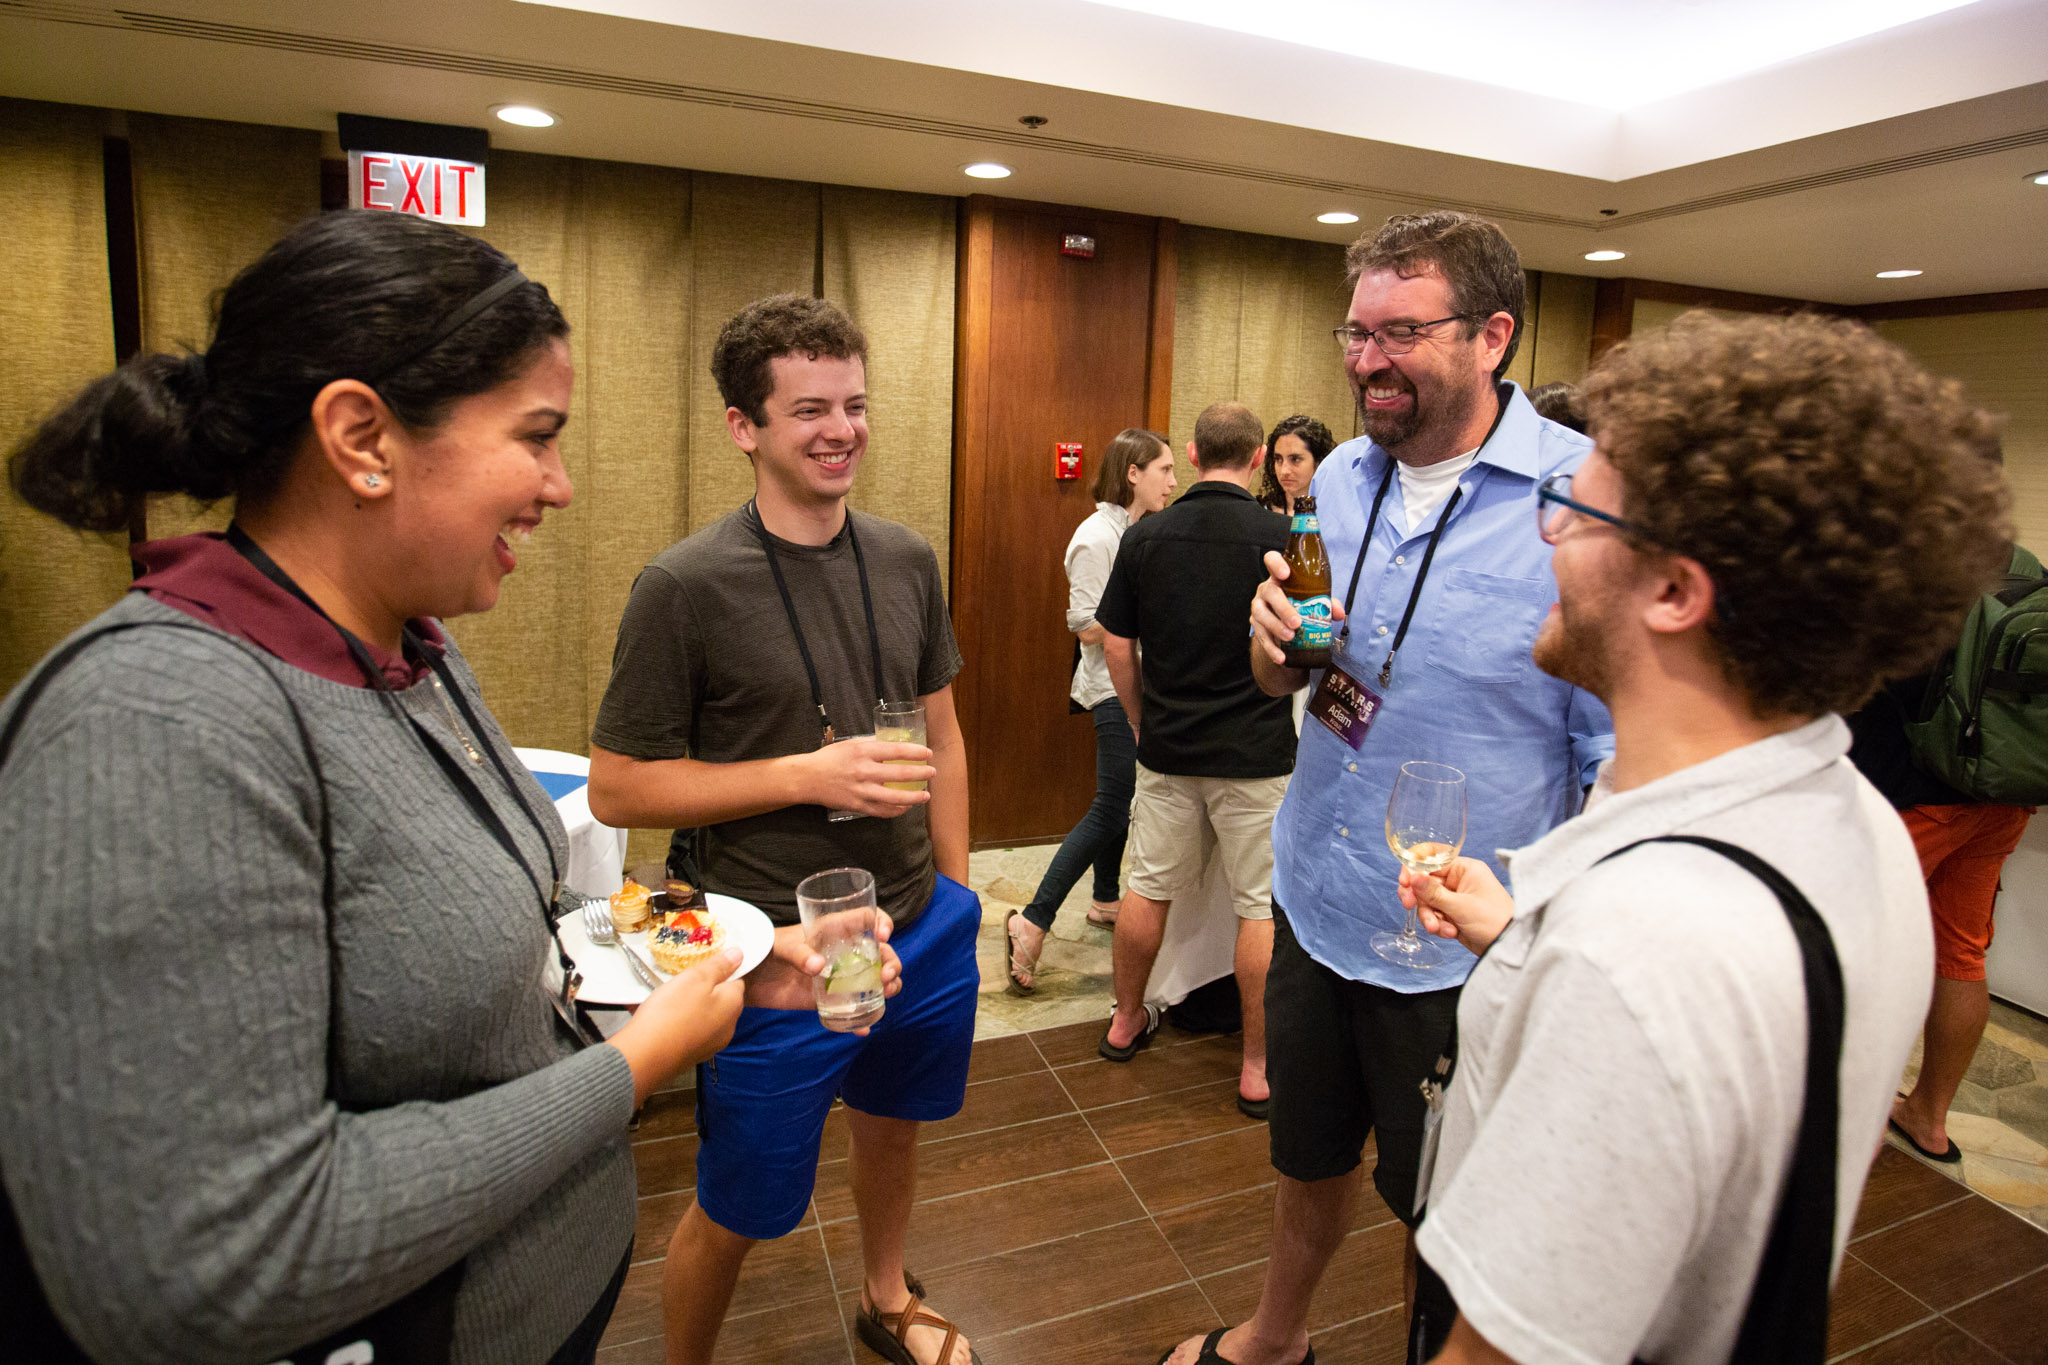 GMTCSM18-Welcome Reception-019.jpg